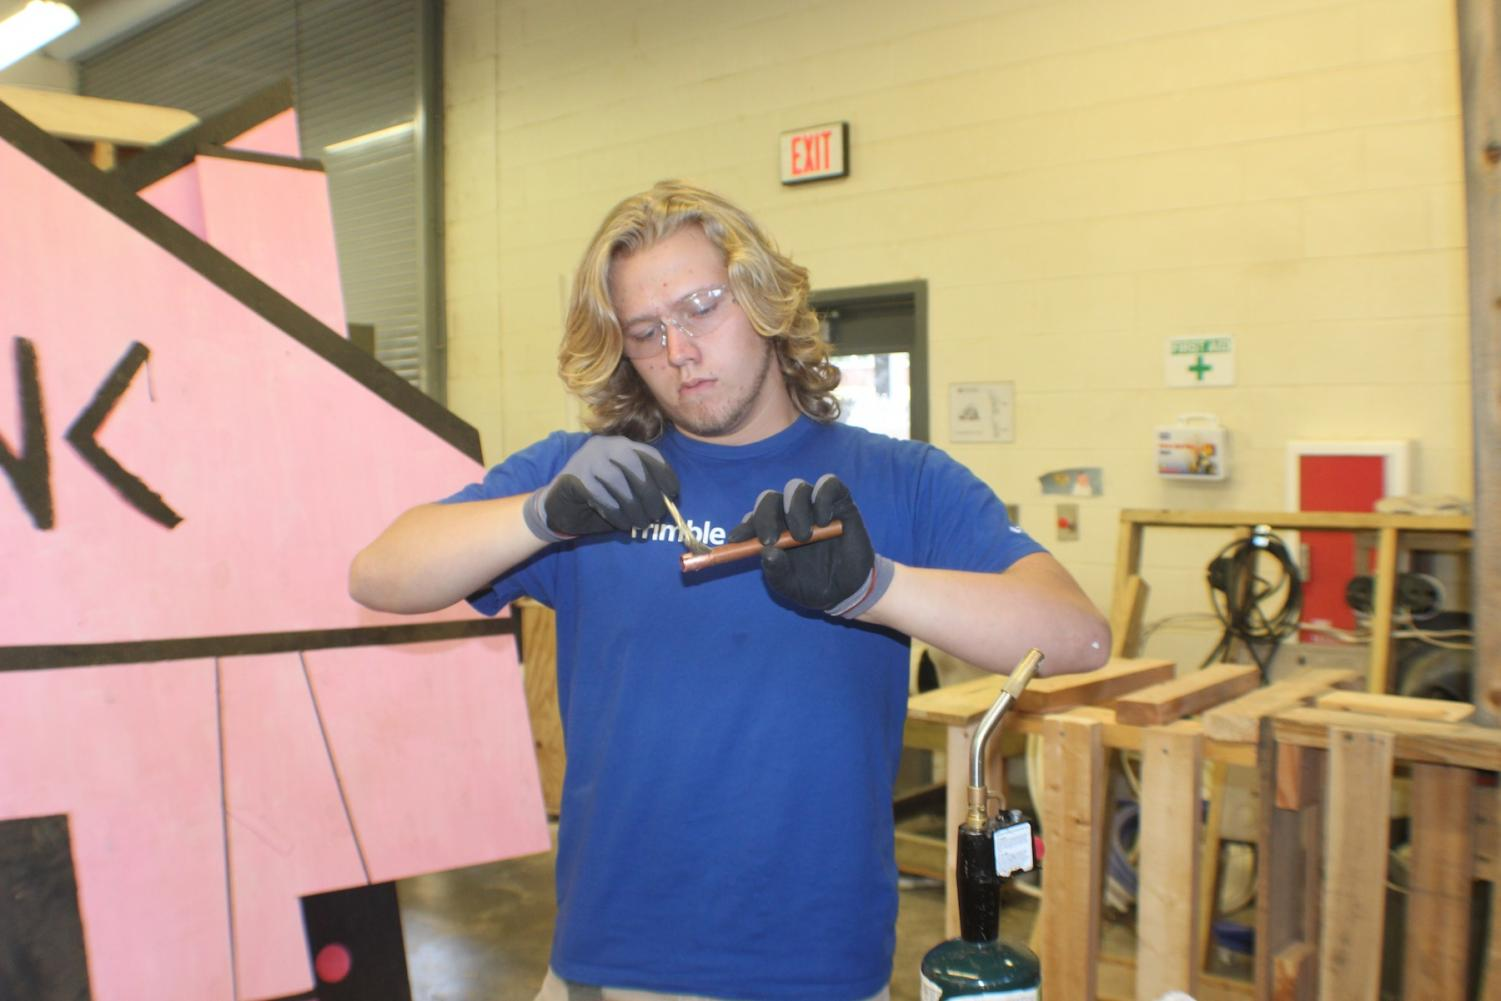 NC senior Nolan Moore worked hard enough to compete in the National Skills and Leadership Conference, earning a spot in the top ten. Moore works on sweating together two copper pipes, a necessary skill for his desired occupation. Sweating involves heating a solder into the pipes to merge them.